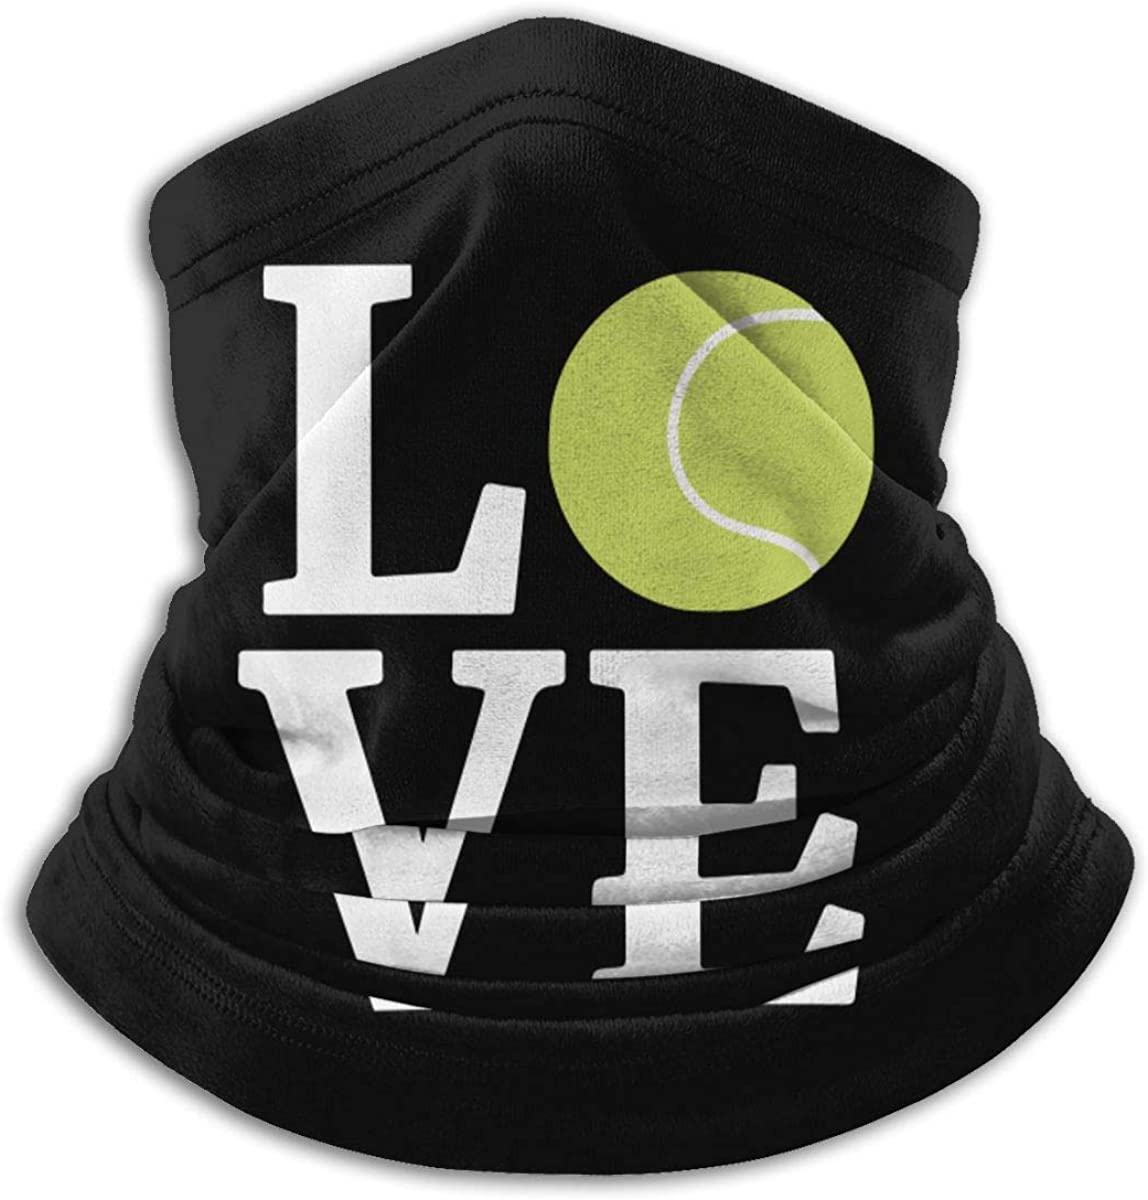 Love Tennis Ball Men /& Women Face Mask Windproof Neck Warmer Cold Weather Neck Gaiter For Fishing Motorcycling